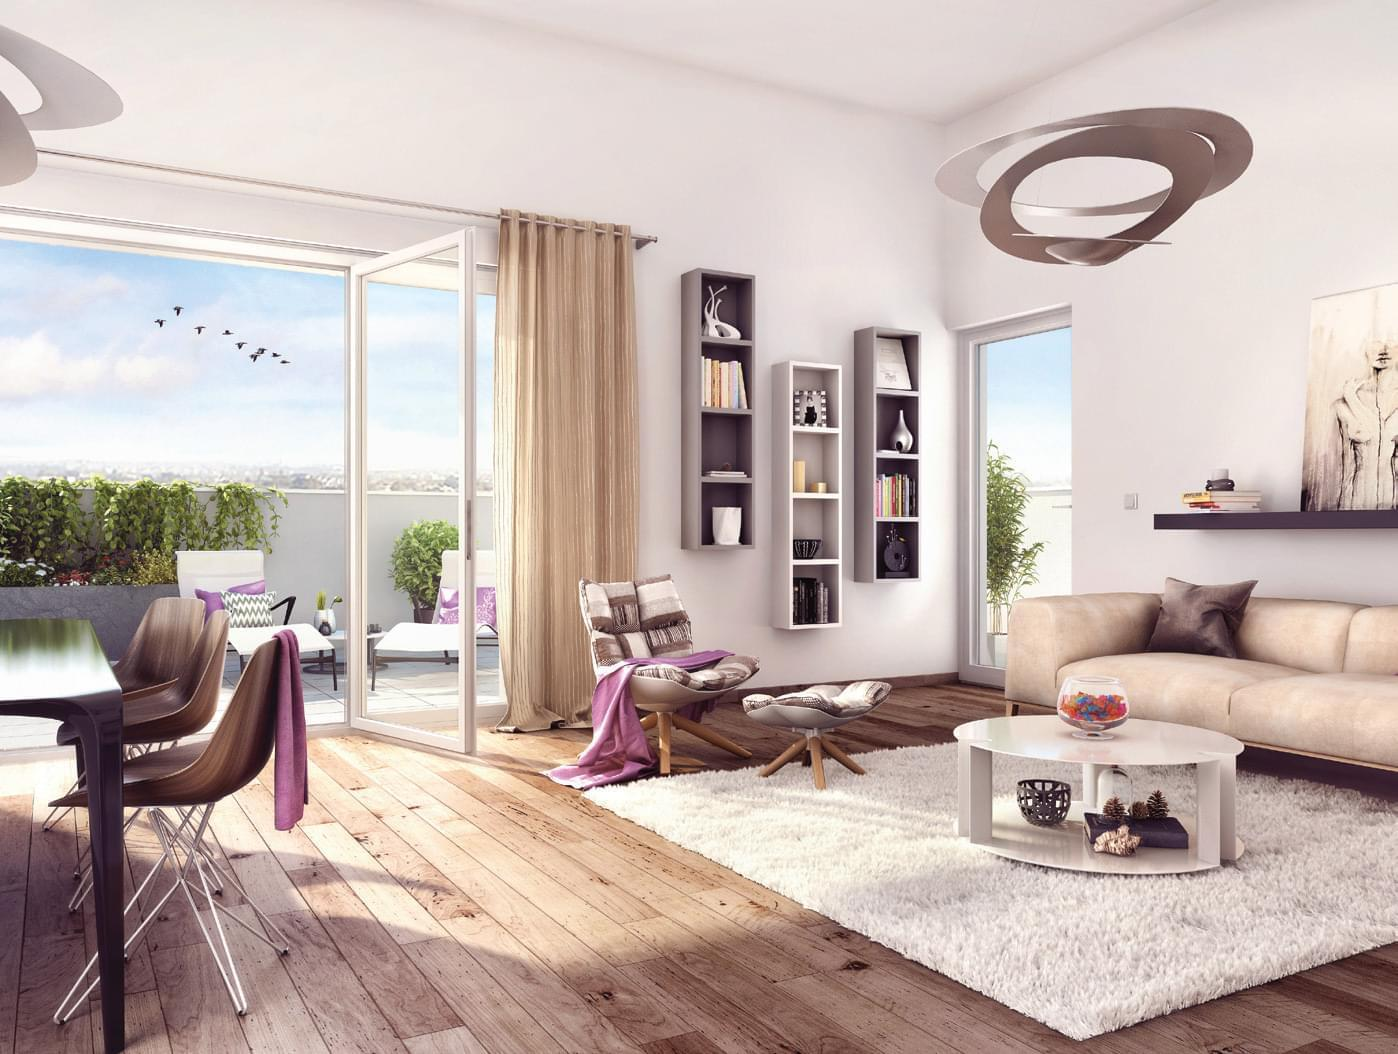 programme immobilier neuf lyon 9 saint rambert the house proche le barbe rue docteurs cordier. Black Bedroom Furniture Sets. Home Design Ideas